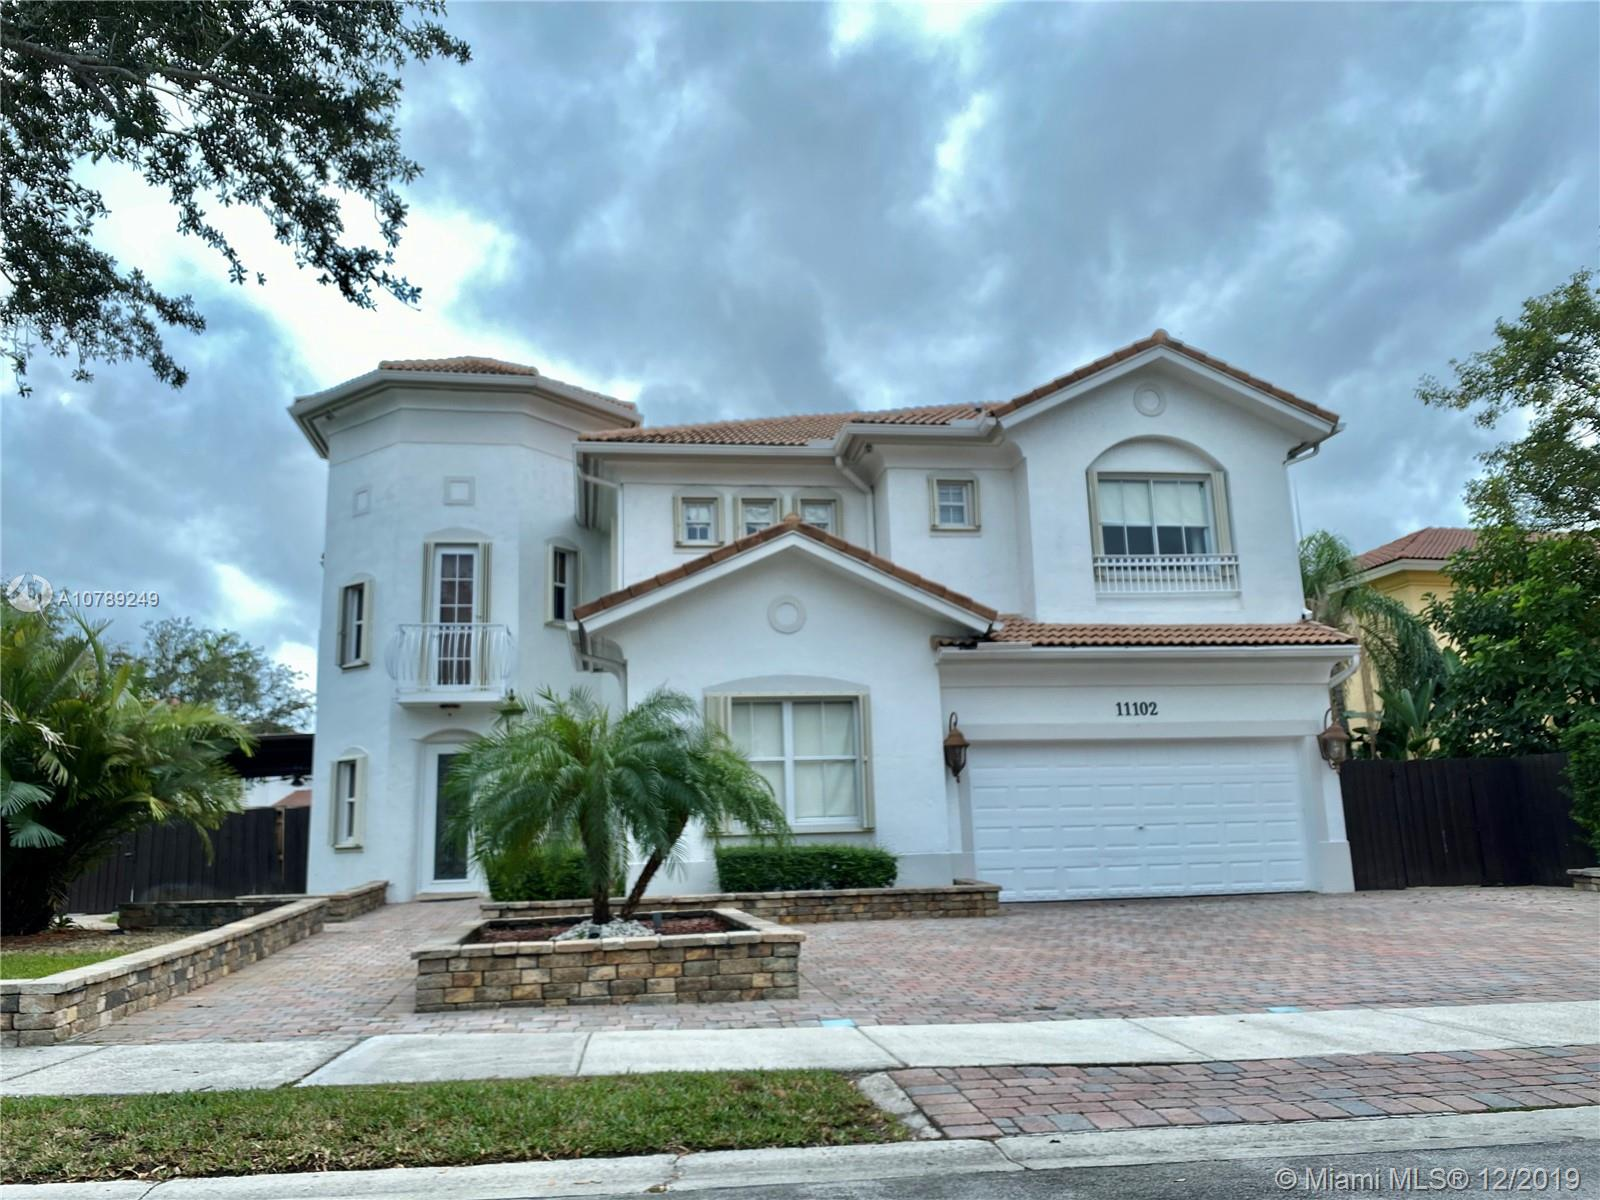 11102 NW 71st Ter #11102 For Sale A10789249, FL